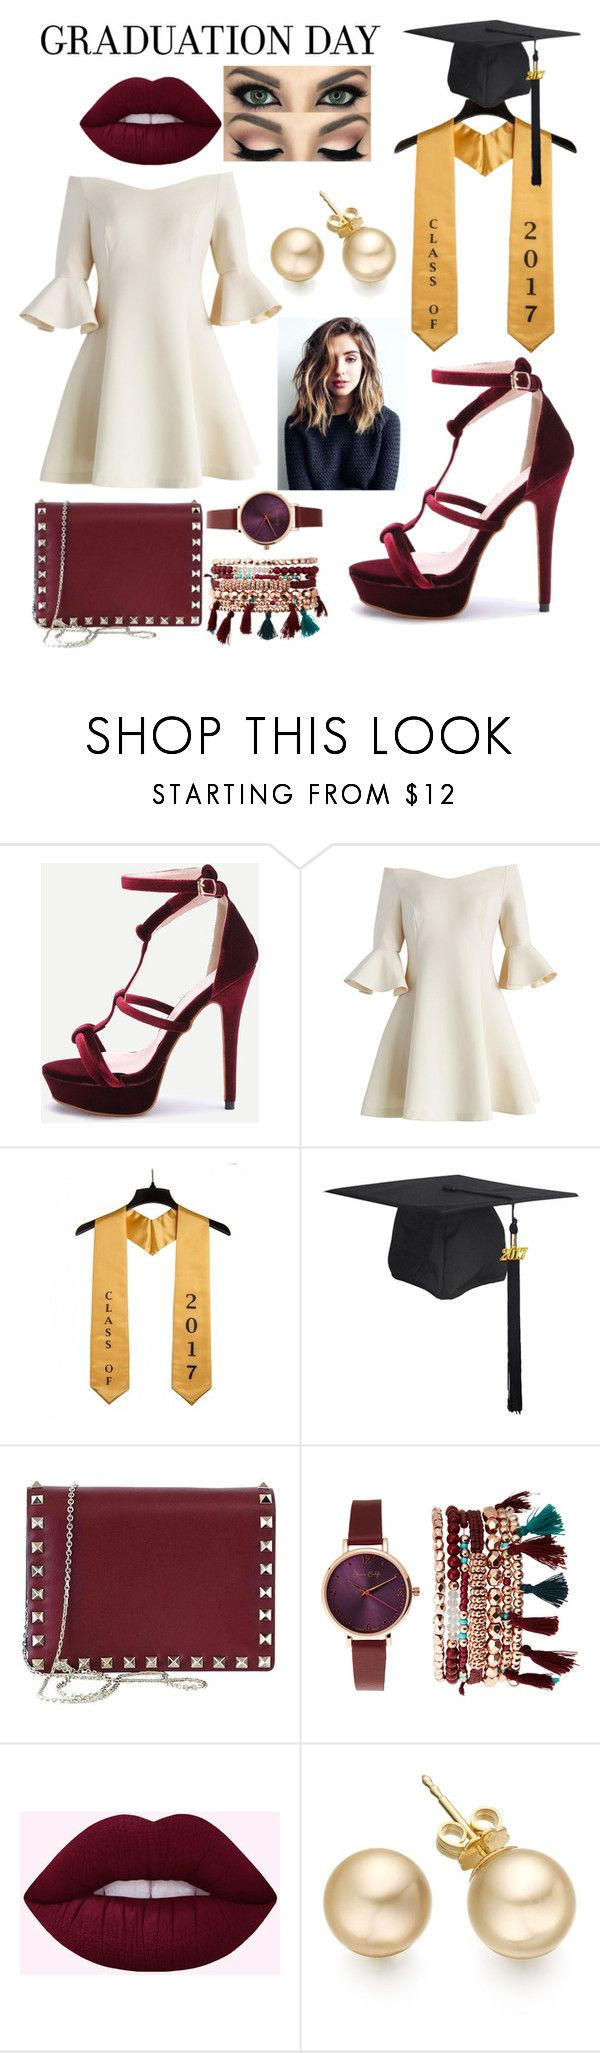 """2017 Valedictorian"" by shanneilfashionart ❤ liked on Polyvore featuring Chicwish, Valentino and Jessica Carlyle"